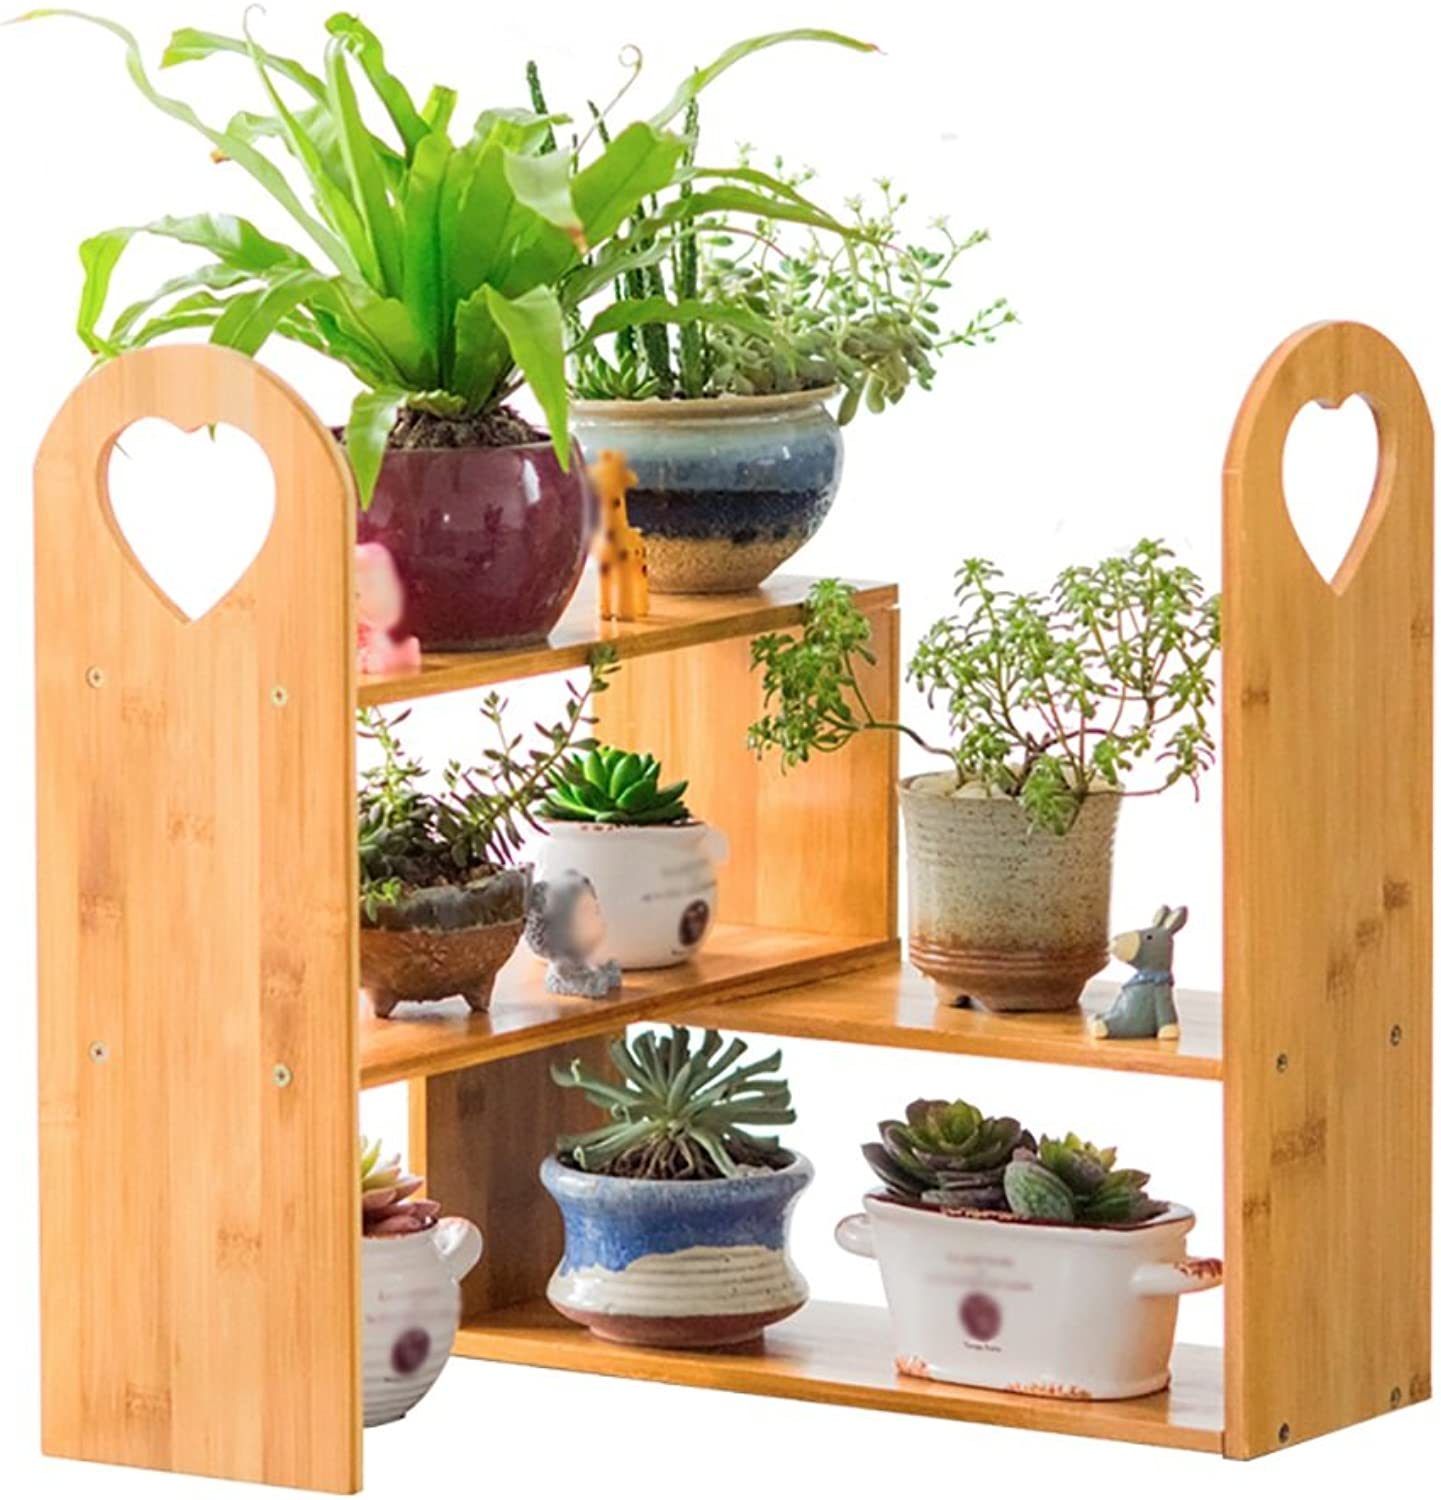 AJZGFOutdoor Indoor Display Plant Stand Simple and Stylish Multi Plant Shelf, Wooden Kitchen Rack